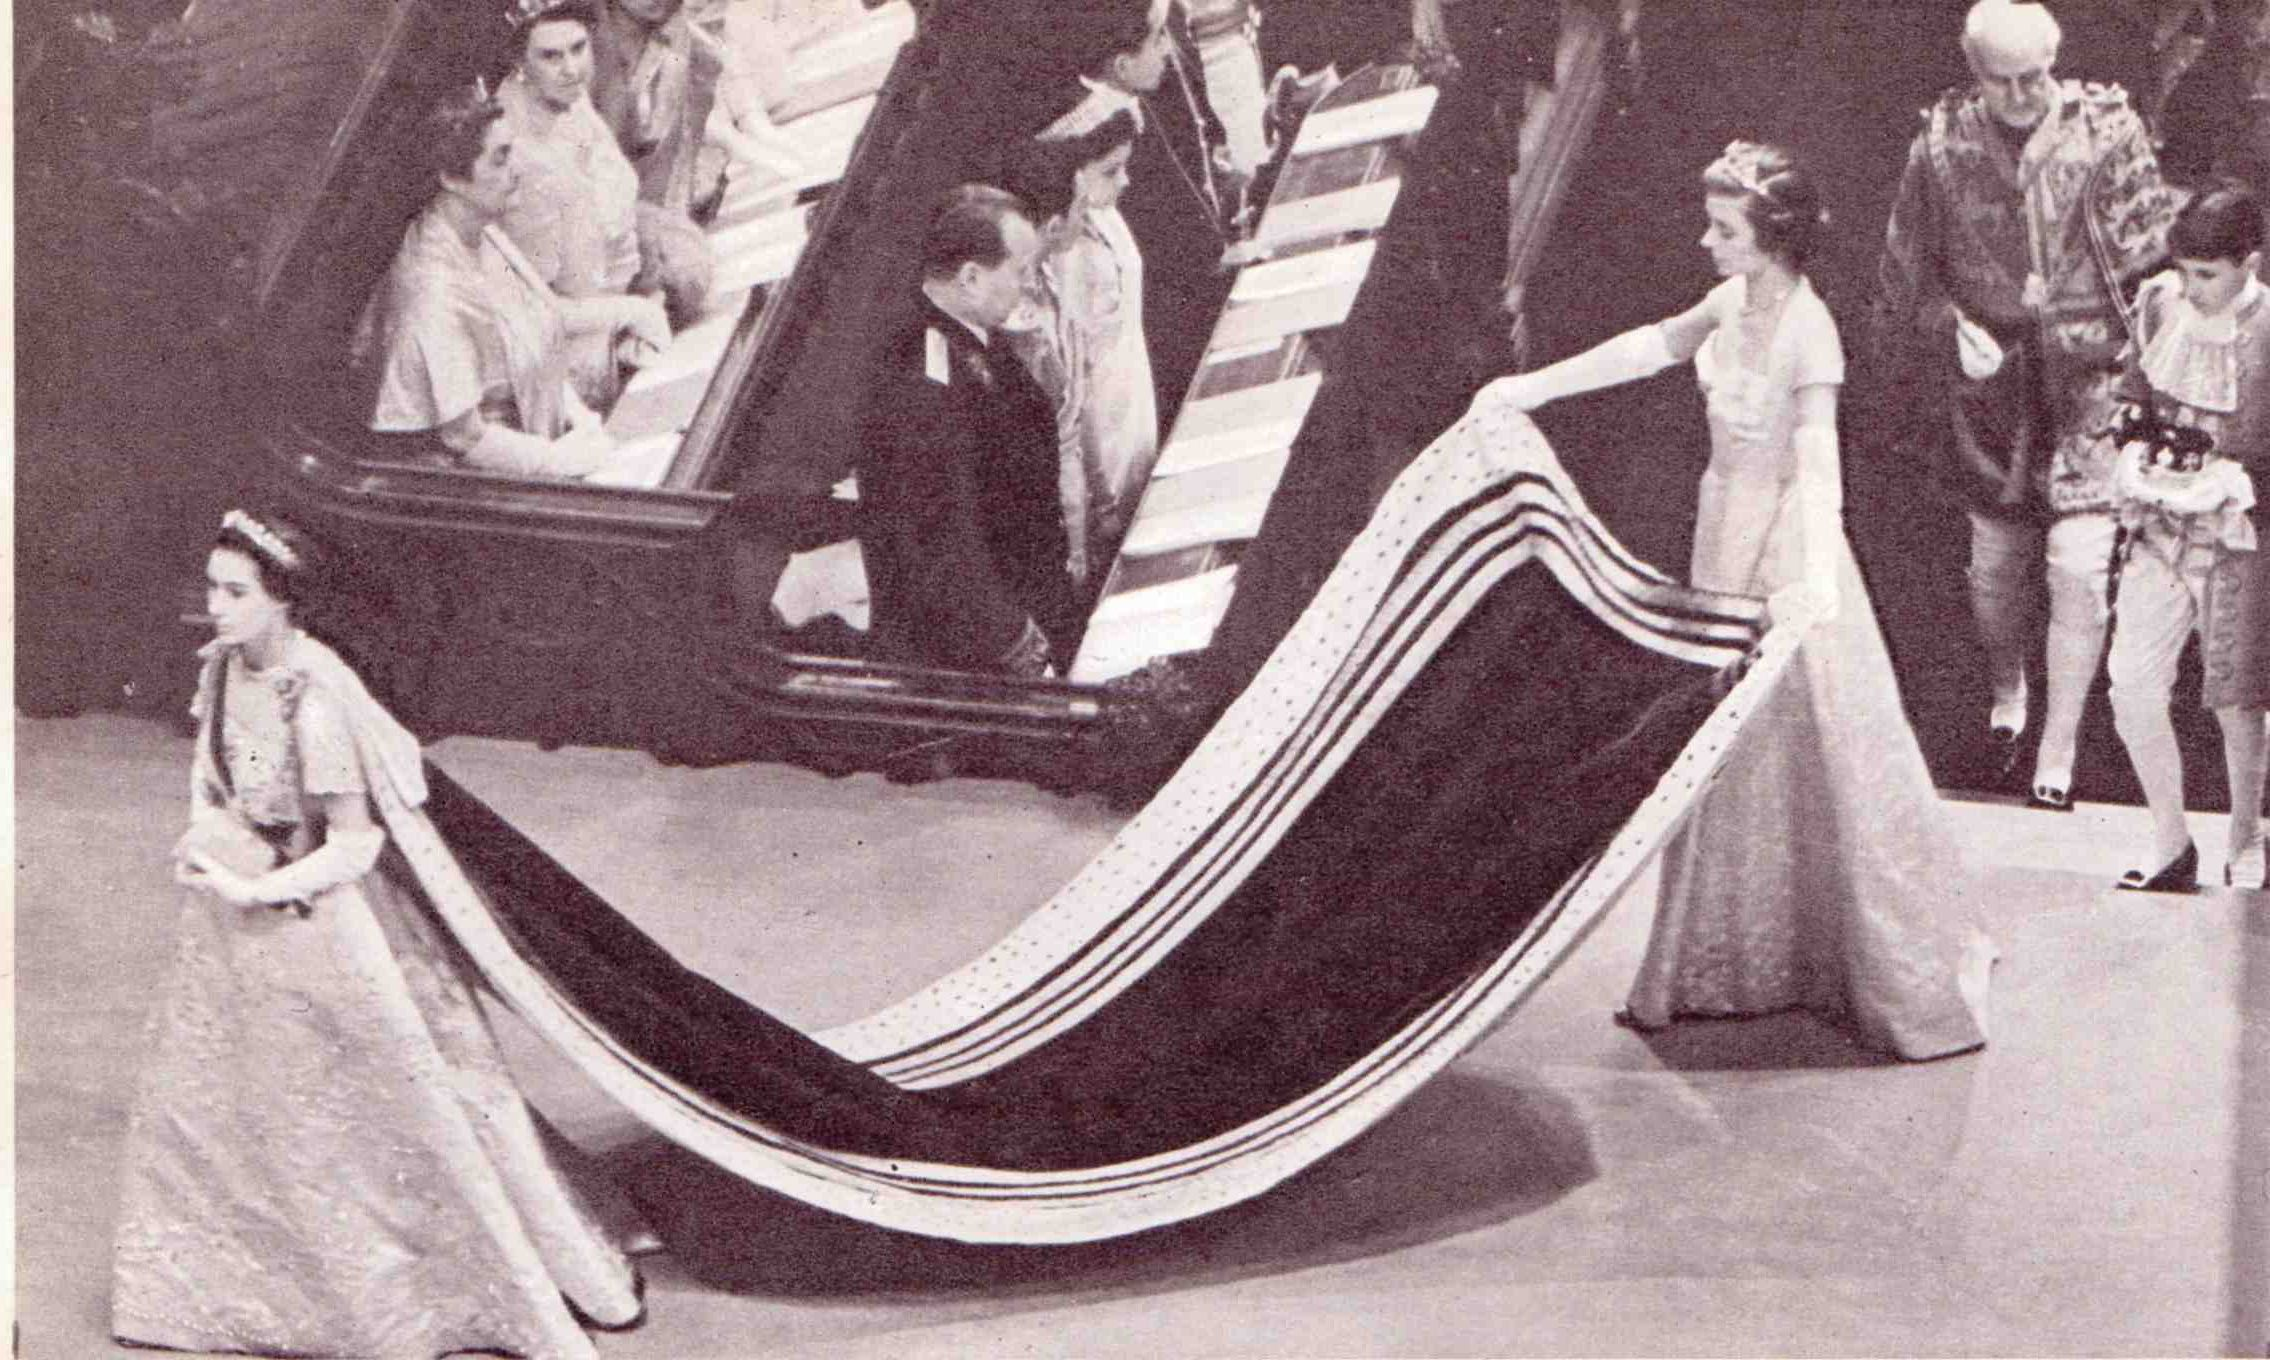 Our queen amp princess margaret vintage photos for the jubilee